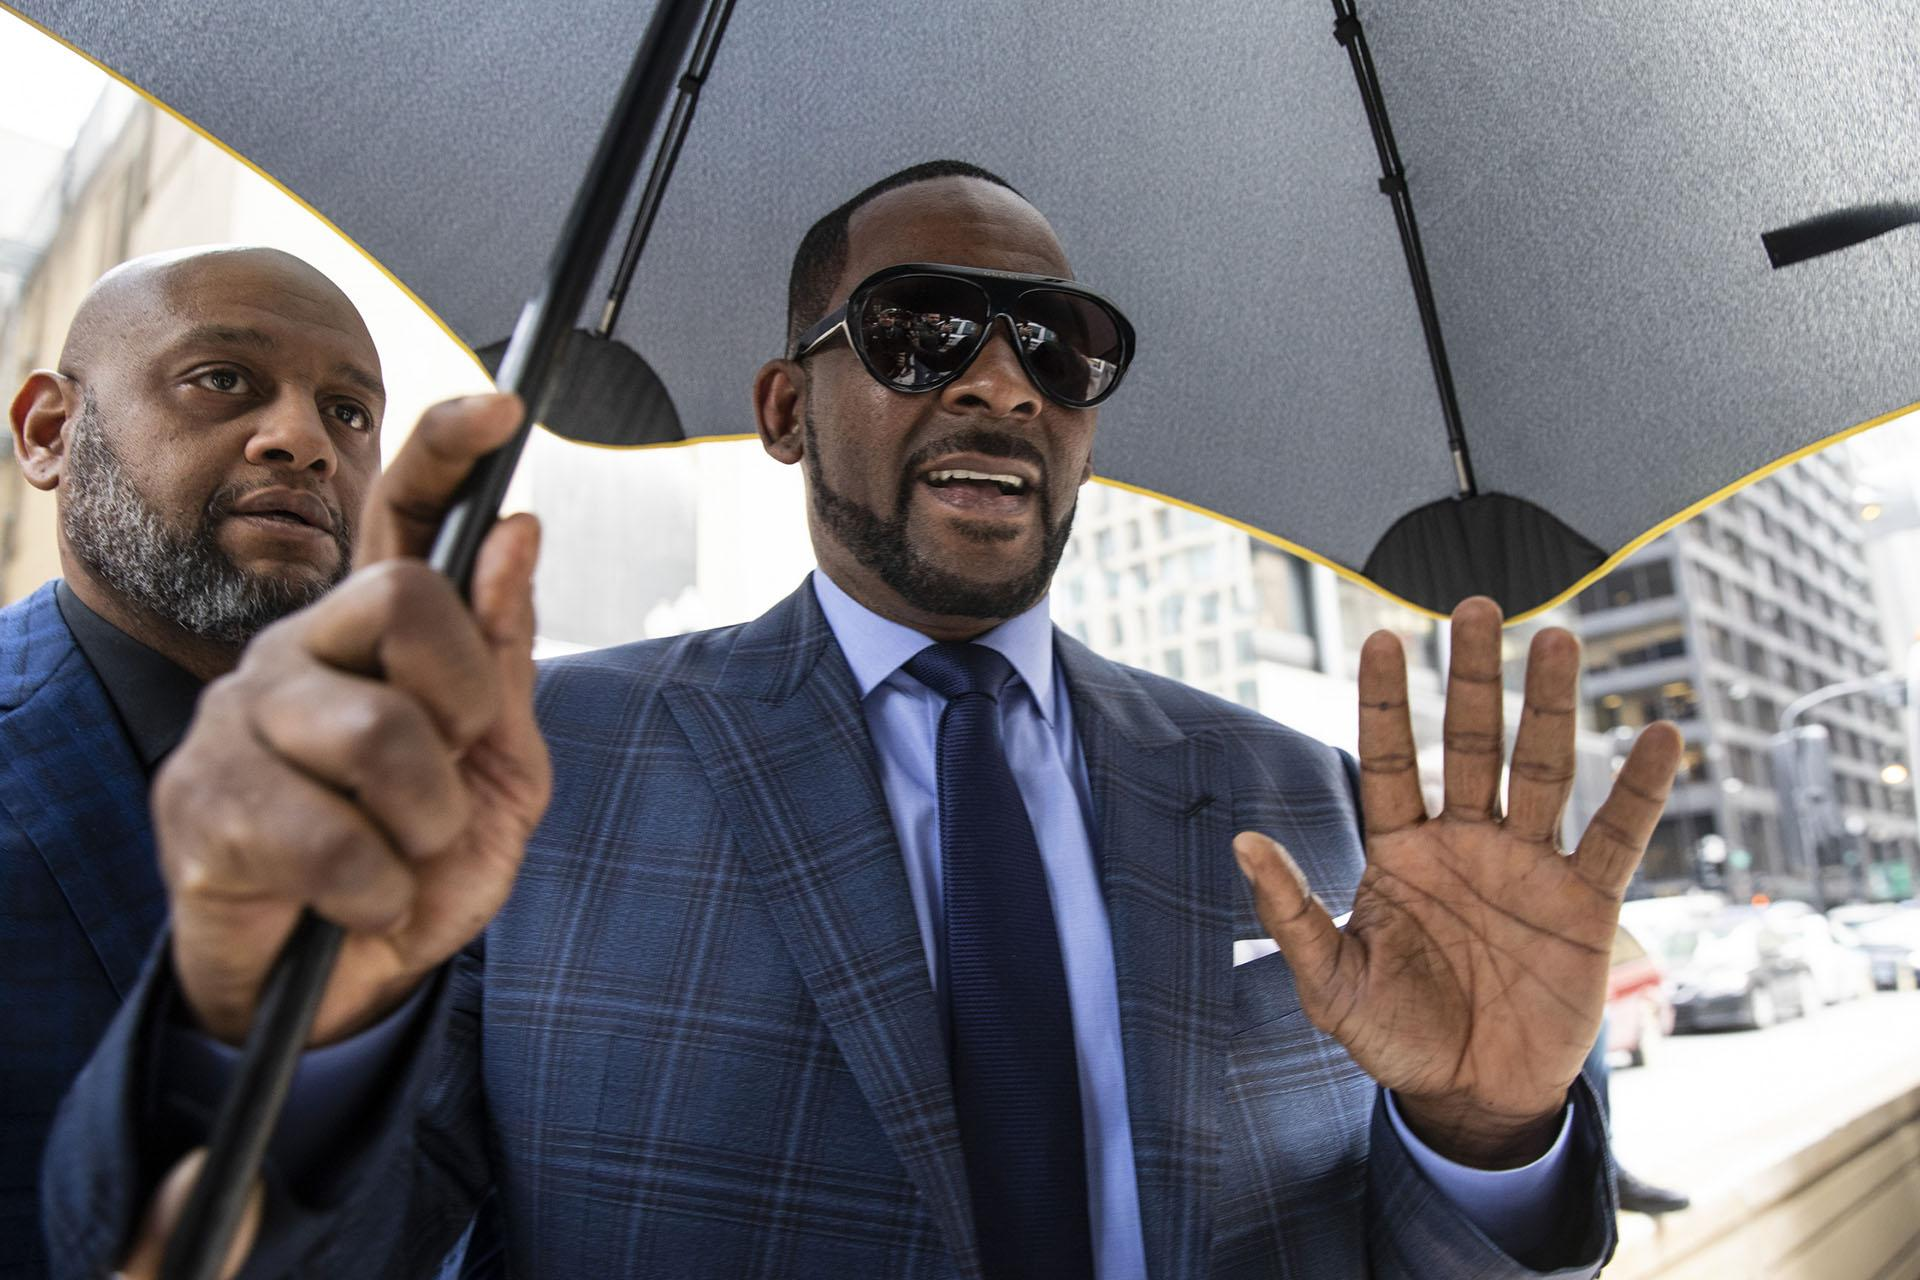 R. Kelly arrives at the Daley Center for a hearing in his child support case on Wednesday, March 6, 2019. (Ashlee Rezin / Chicago Sun-Times via AP)